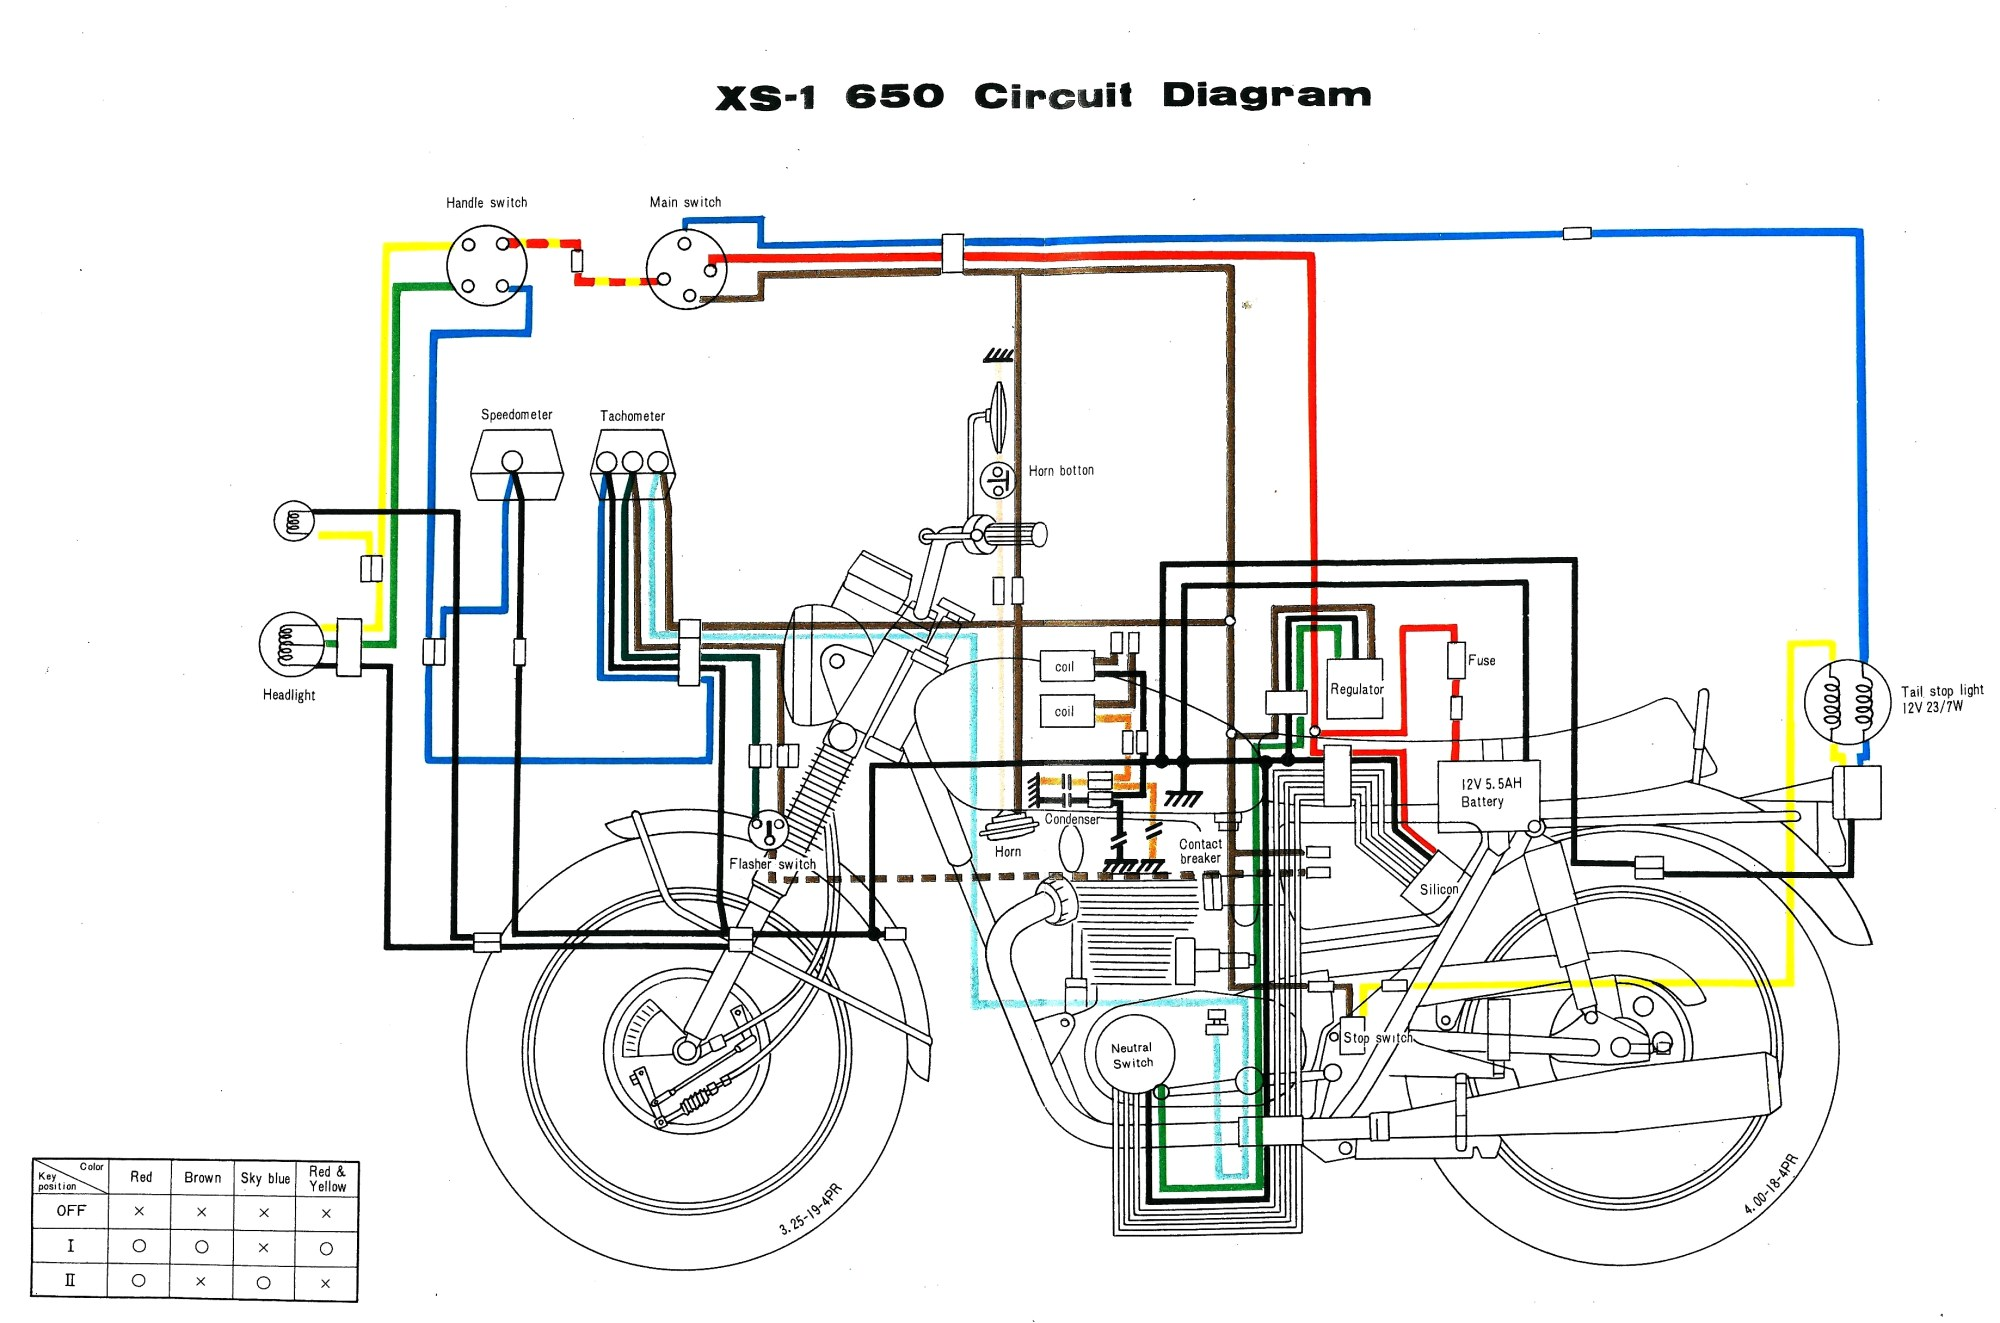 hight resolution of yamaha xs650 wiring diagram wiring diagram mega 1977 xs650 wiring diagram 1977 xs650 wiring diagram